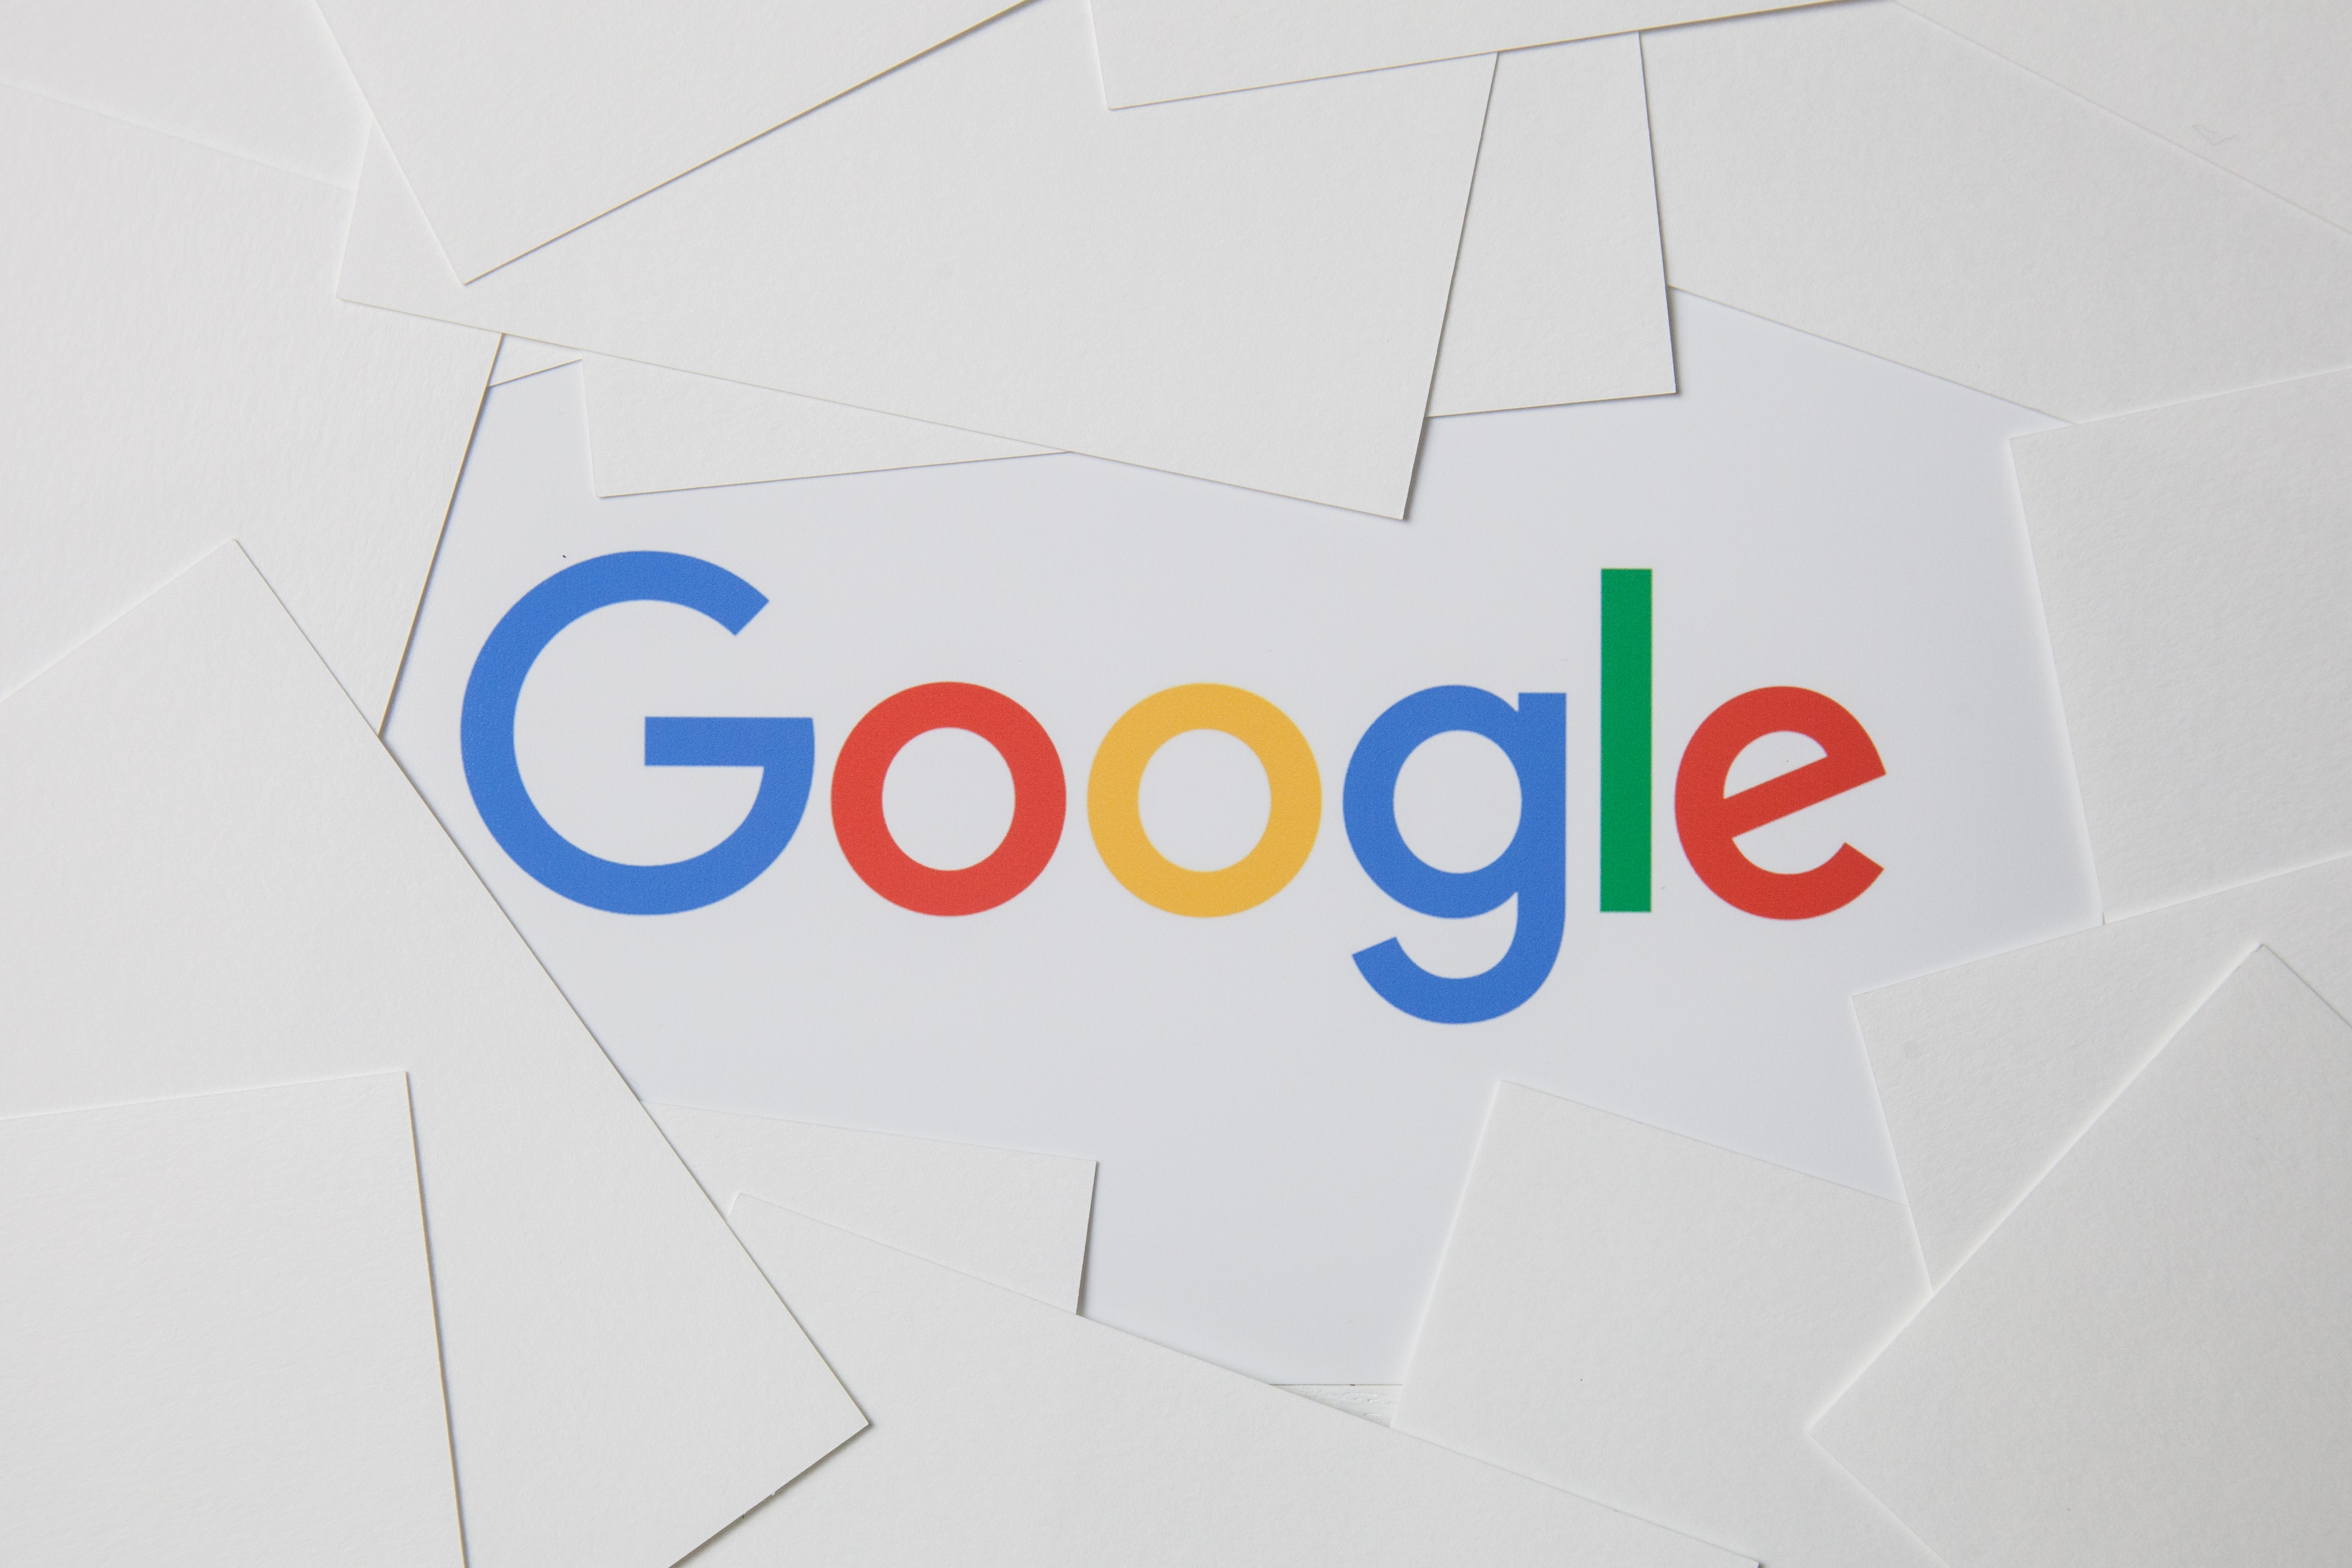 Photo of logo of Google on printing paper on the working table.